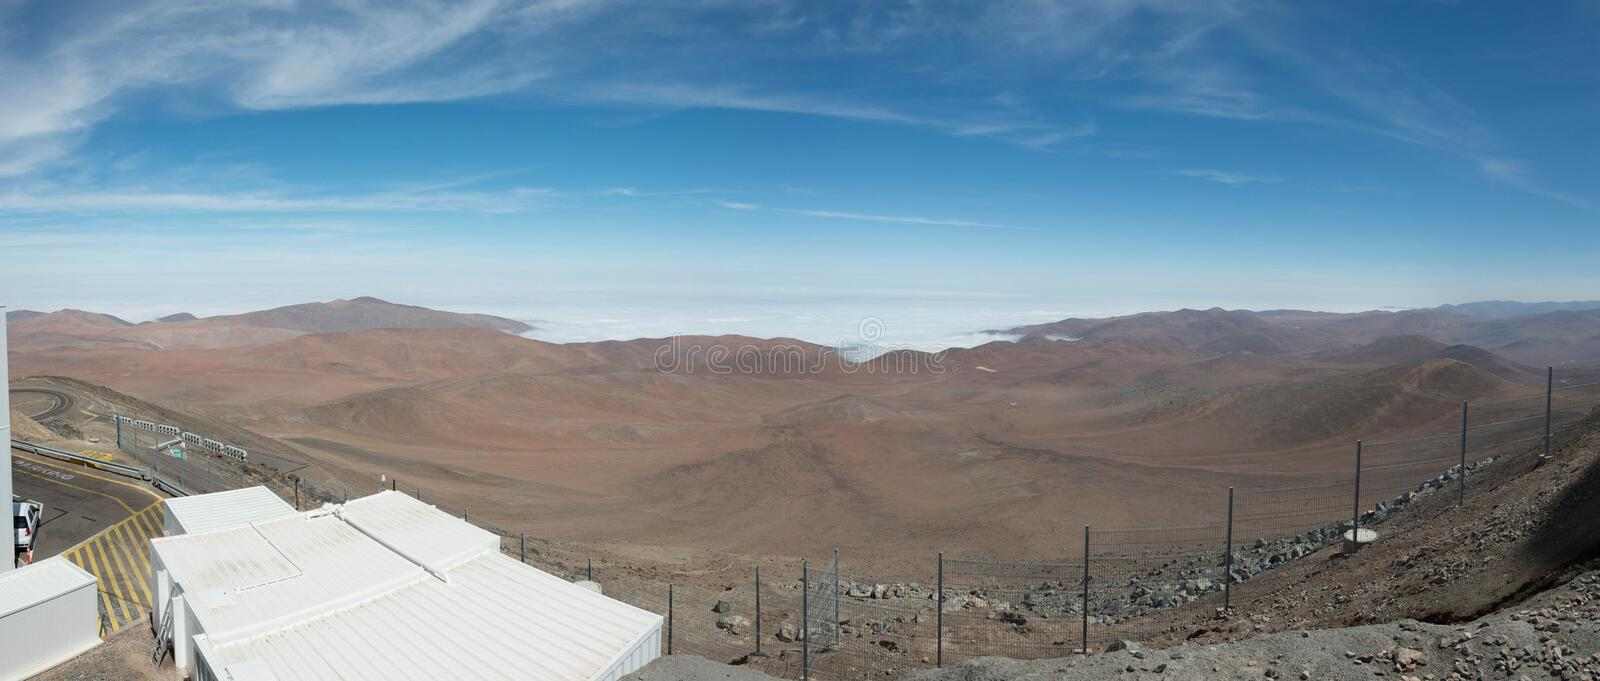 European Very Large Telescope Chile stock photography